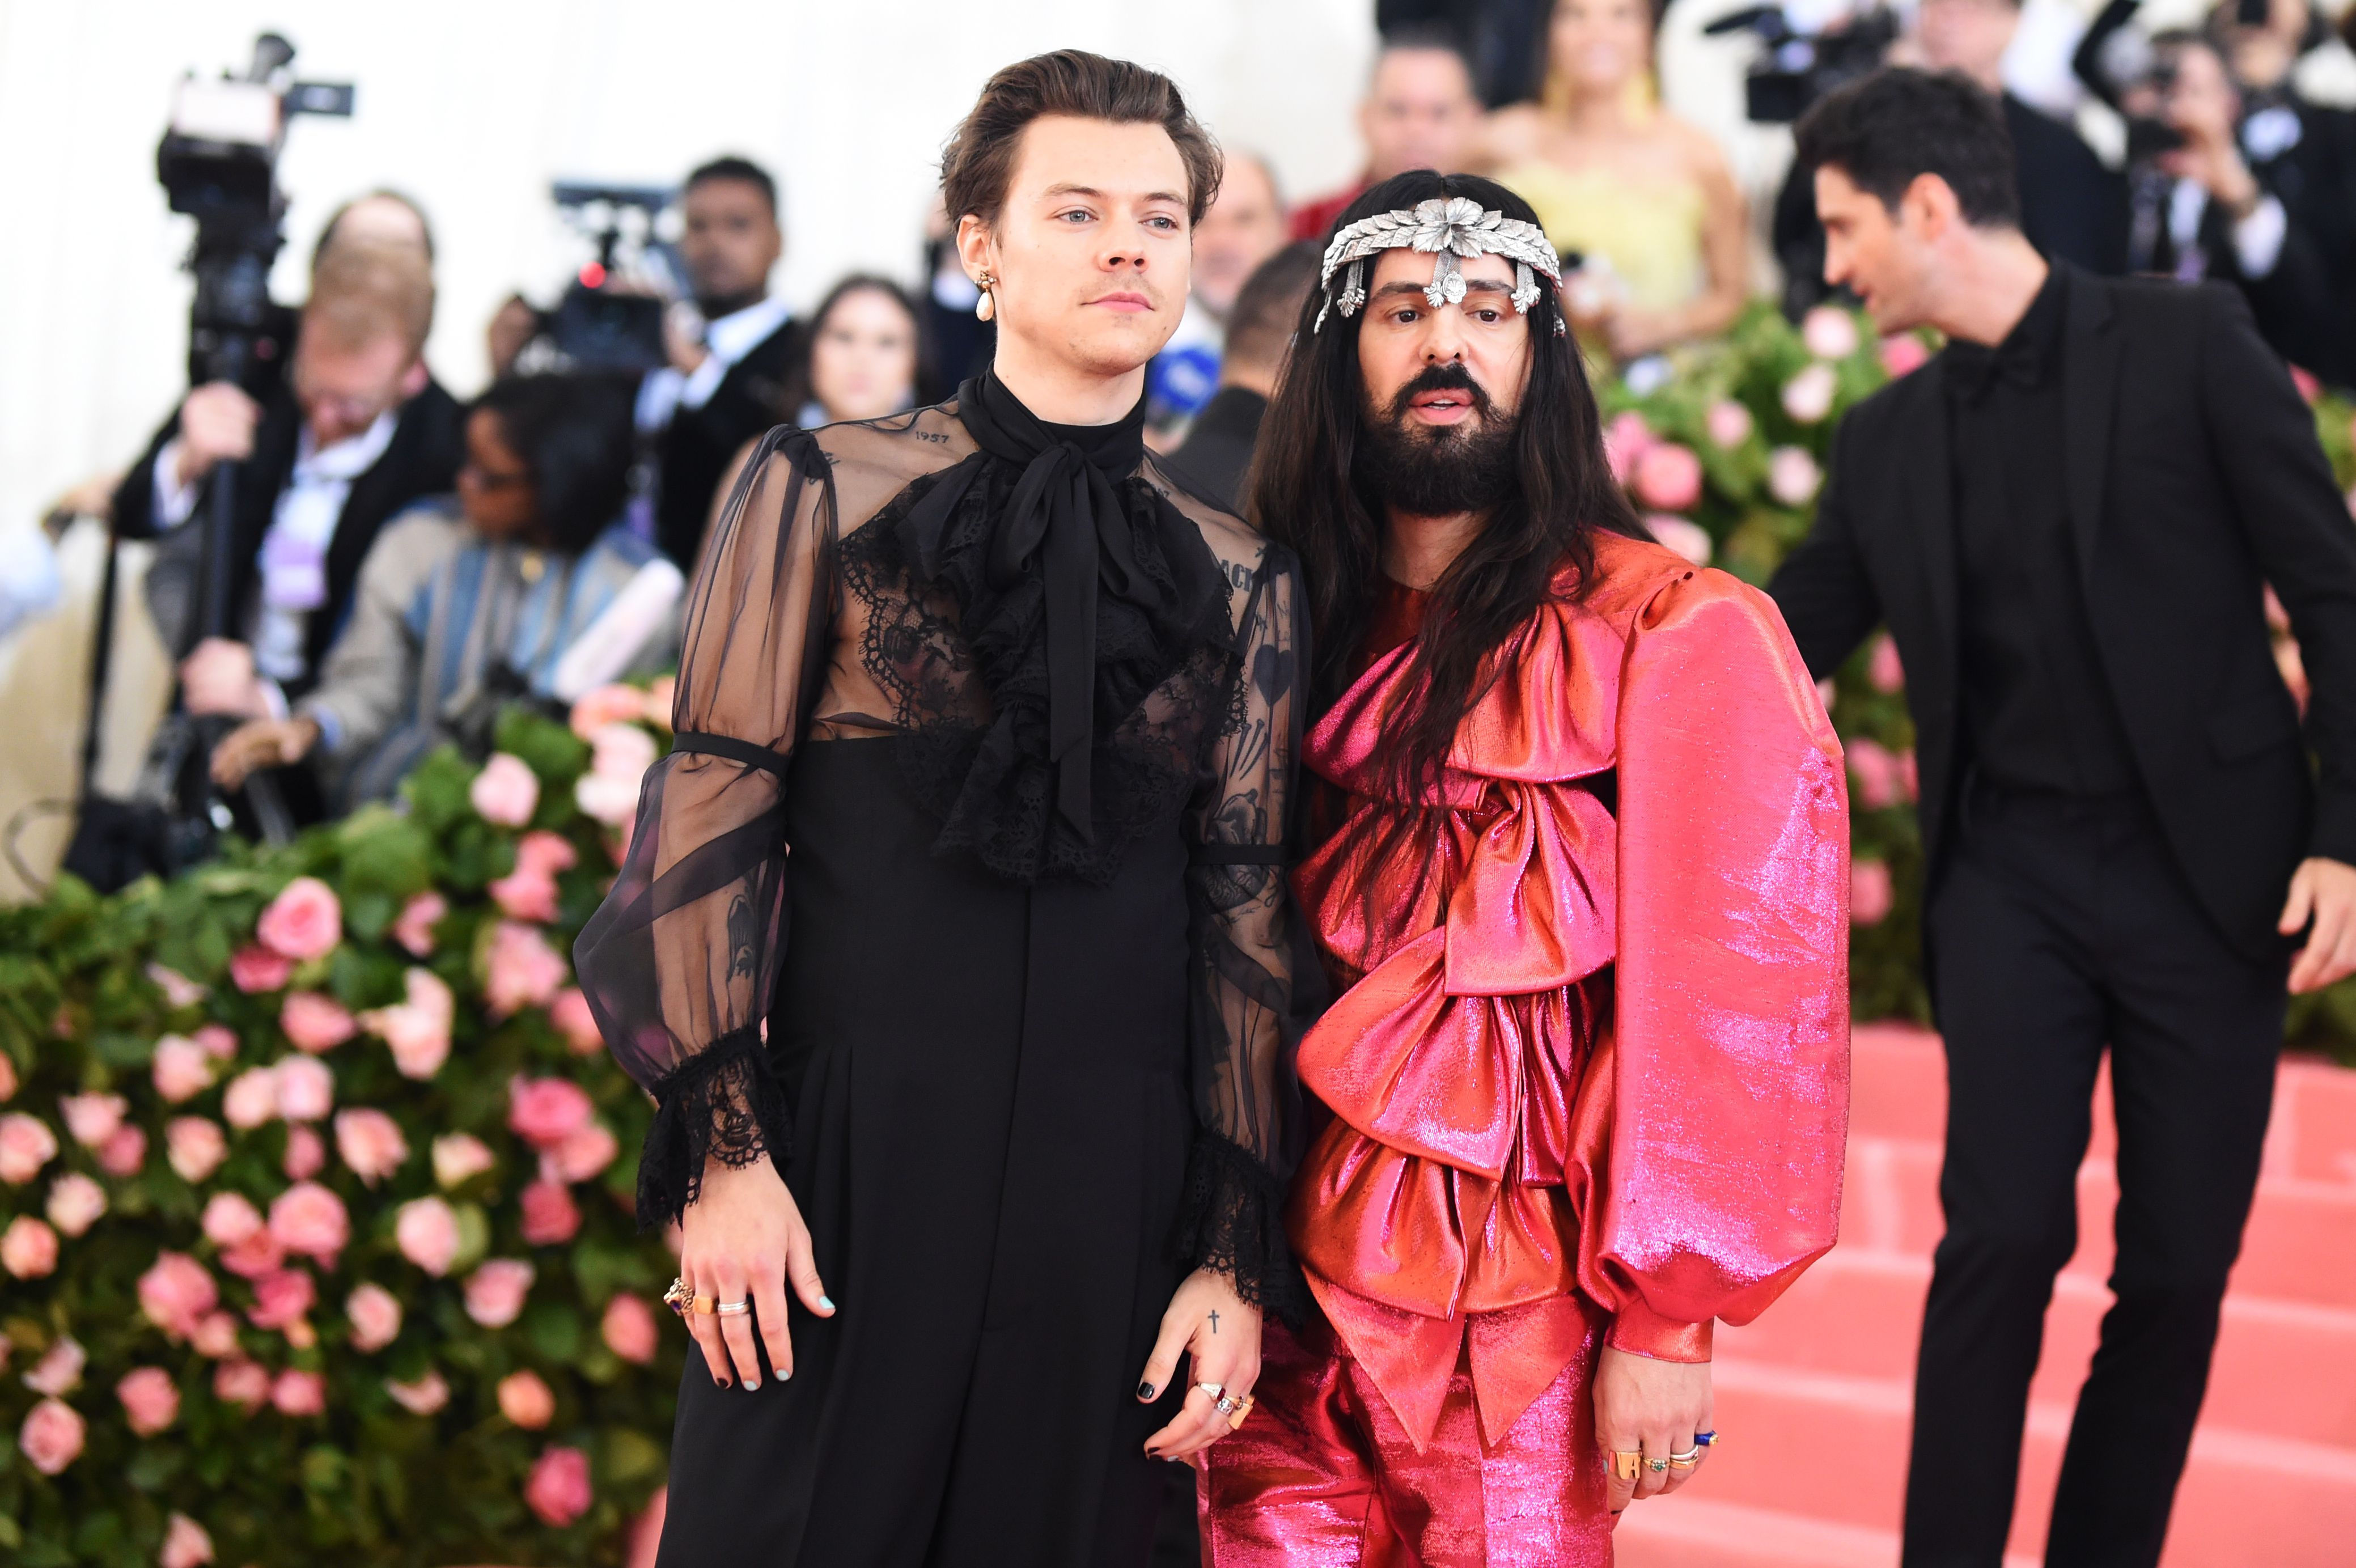 Harry Styles and Alessandro MicheleCostume Institute Benefit celebrating the opening of Camp: Notes on Fashion, Arrivals, The Metropolitan Museum of Art, New York, USA - 06 May 2019